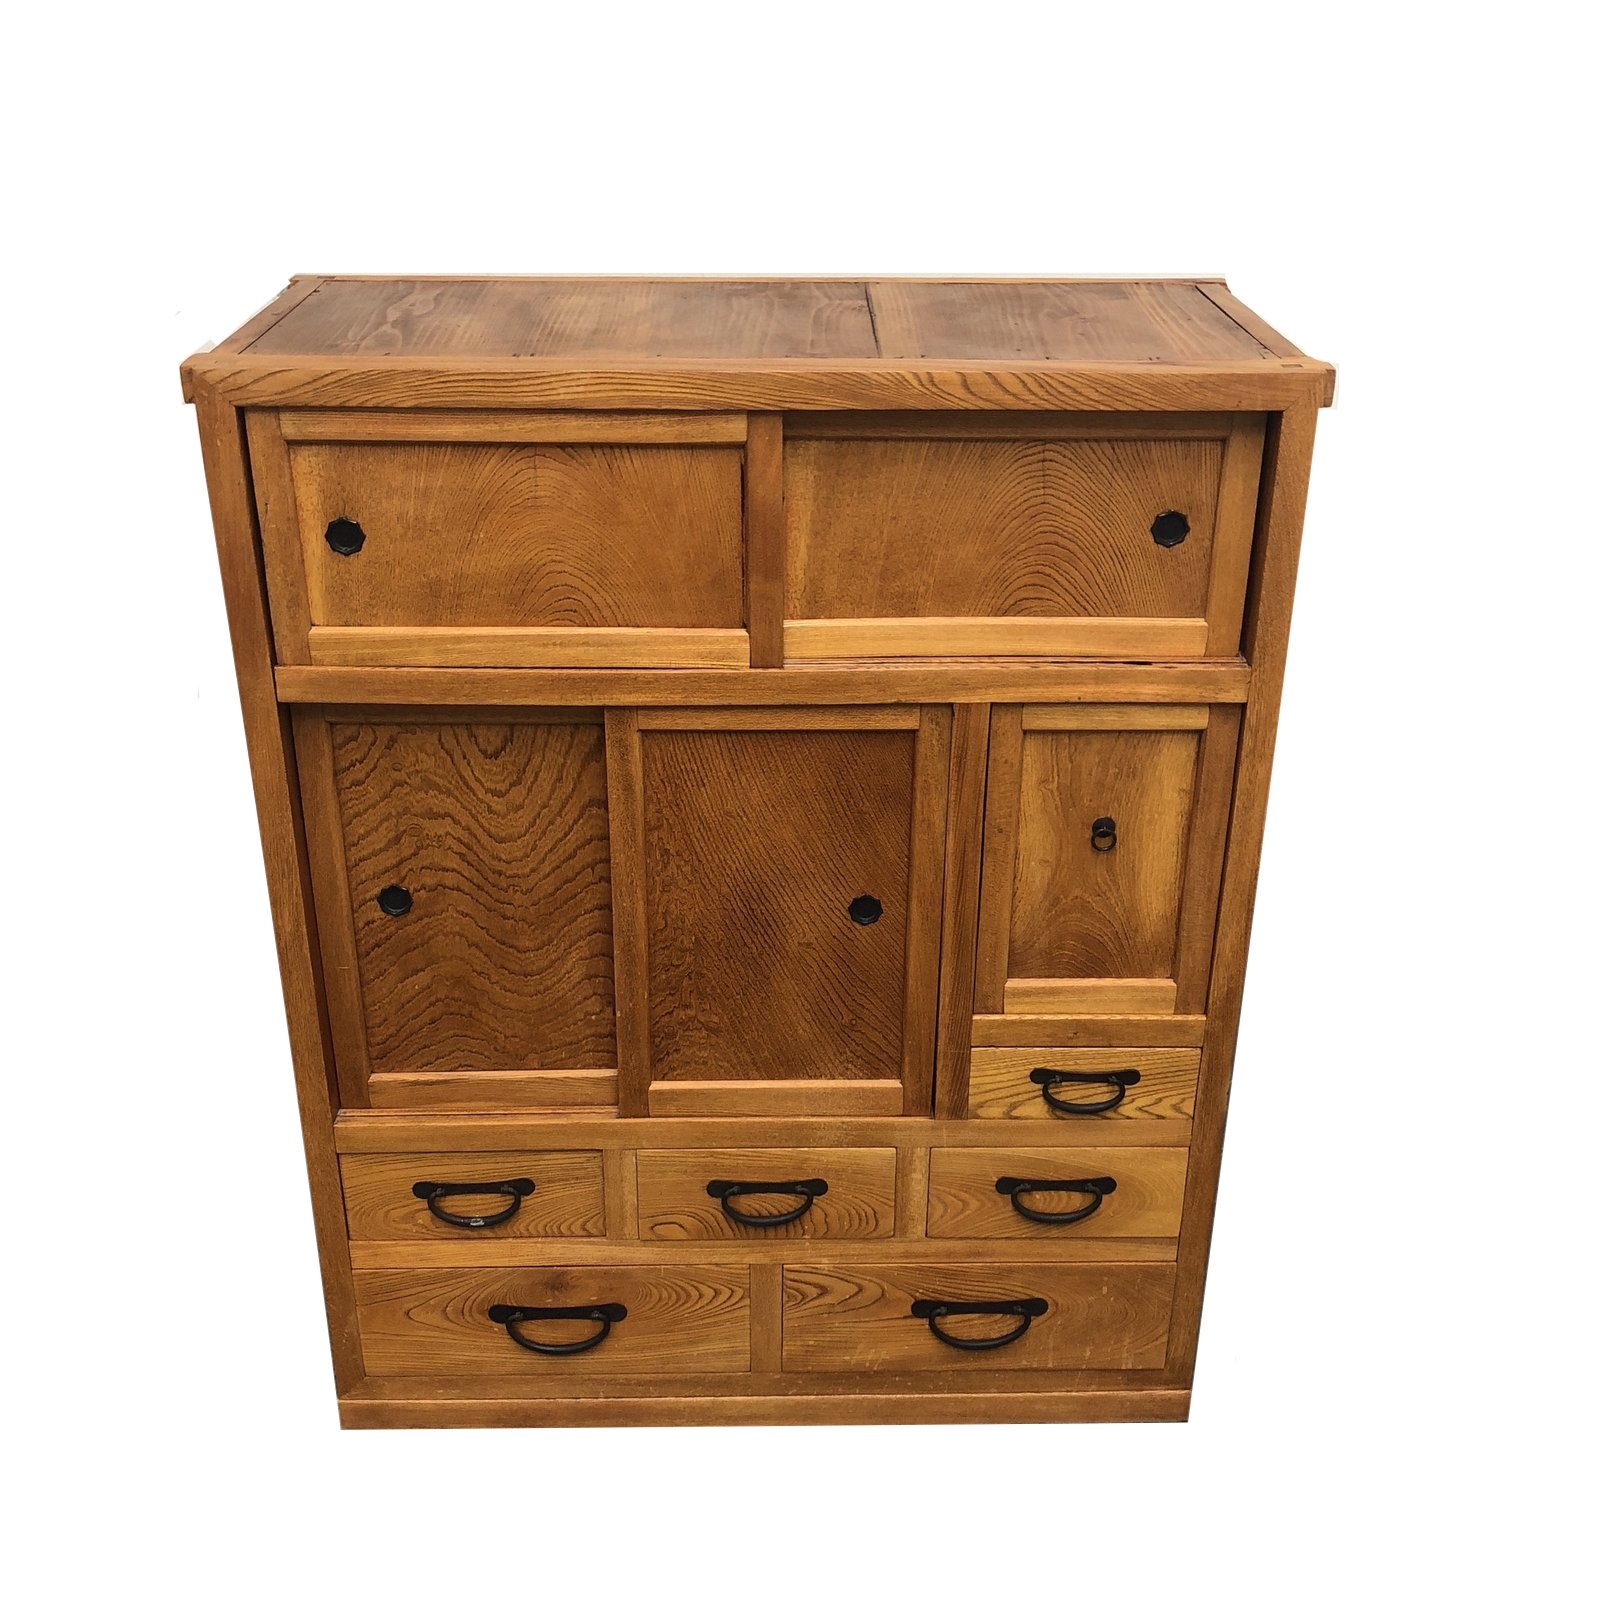 20th Century Japanese Wooden Tansu Cabinet